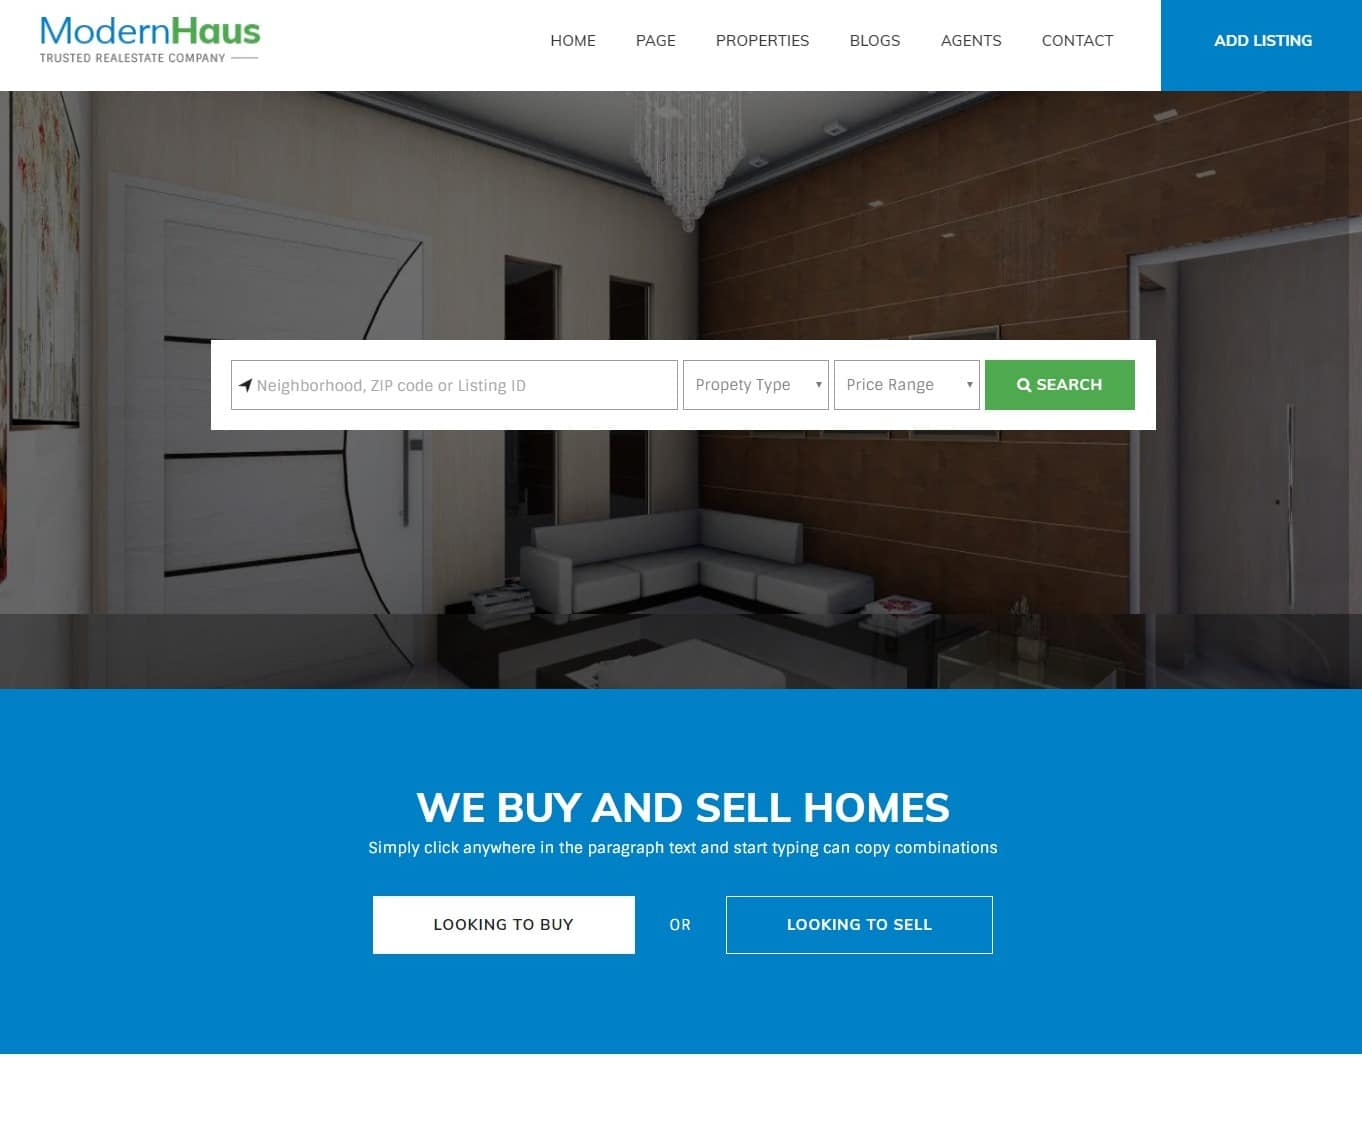 20 Professional Real Estate Website Template For Realtors Brokers